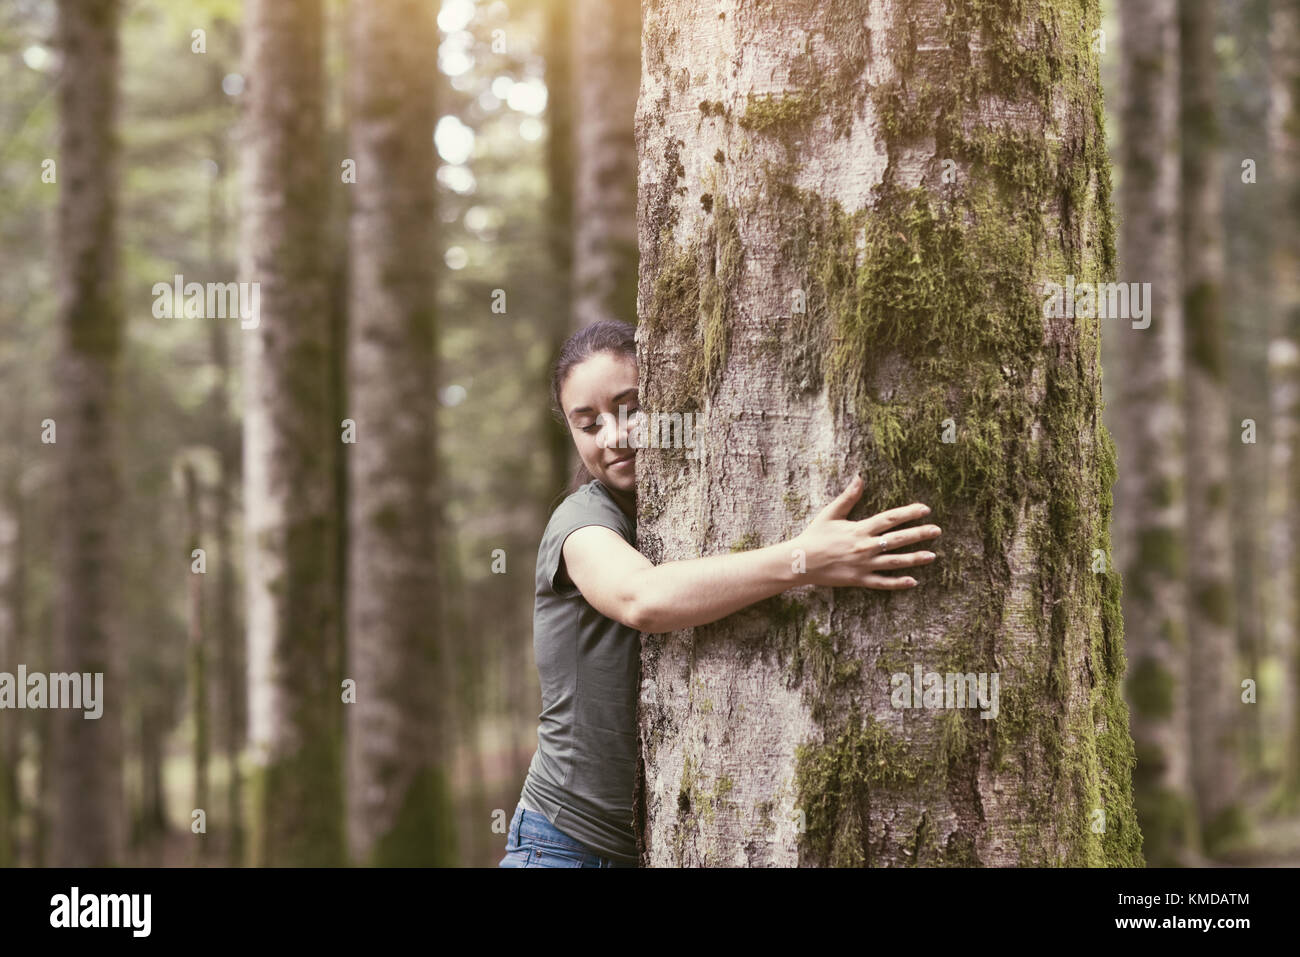 Smiling woman hugging a tree in a lush forest, environmental care and sustainability concept - Stock Image